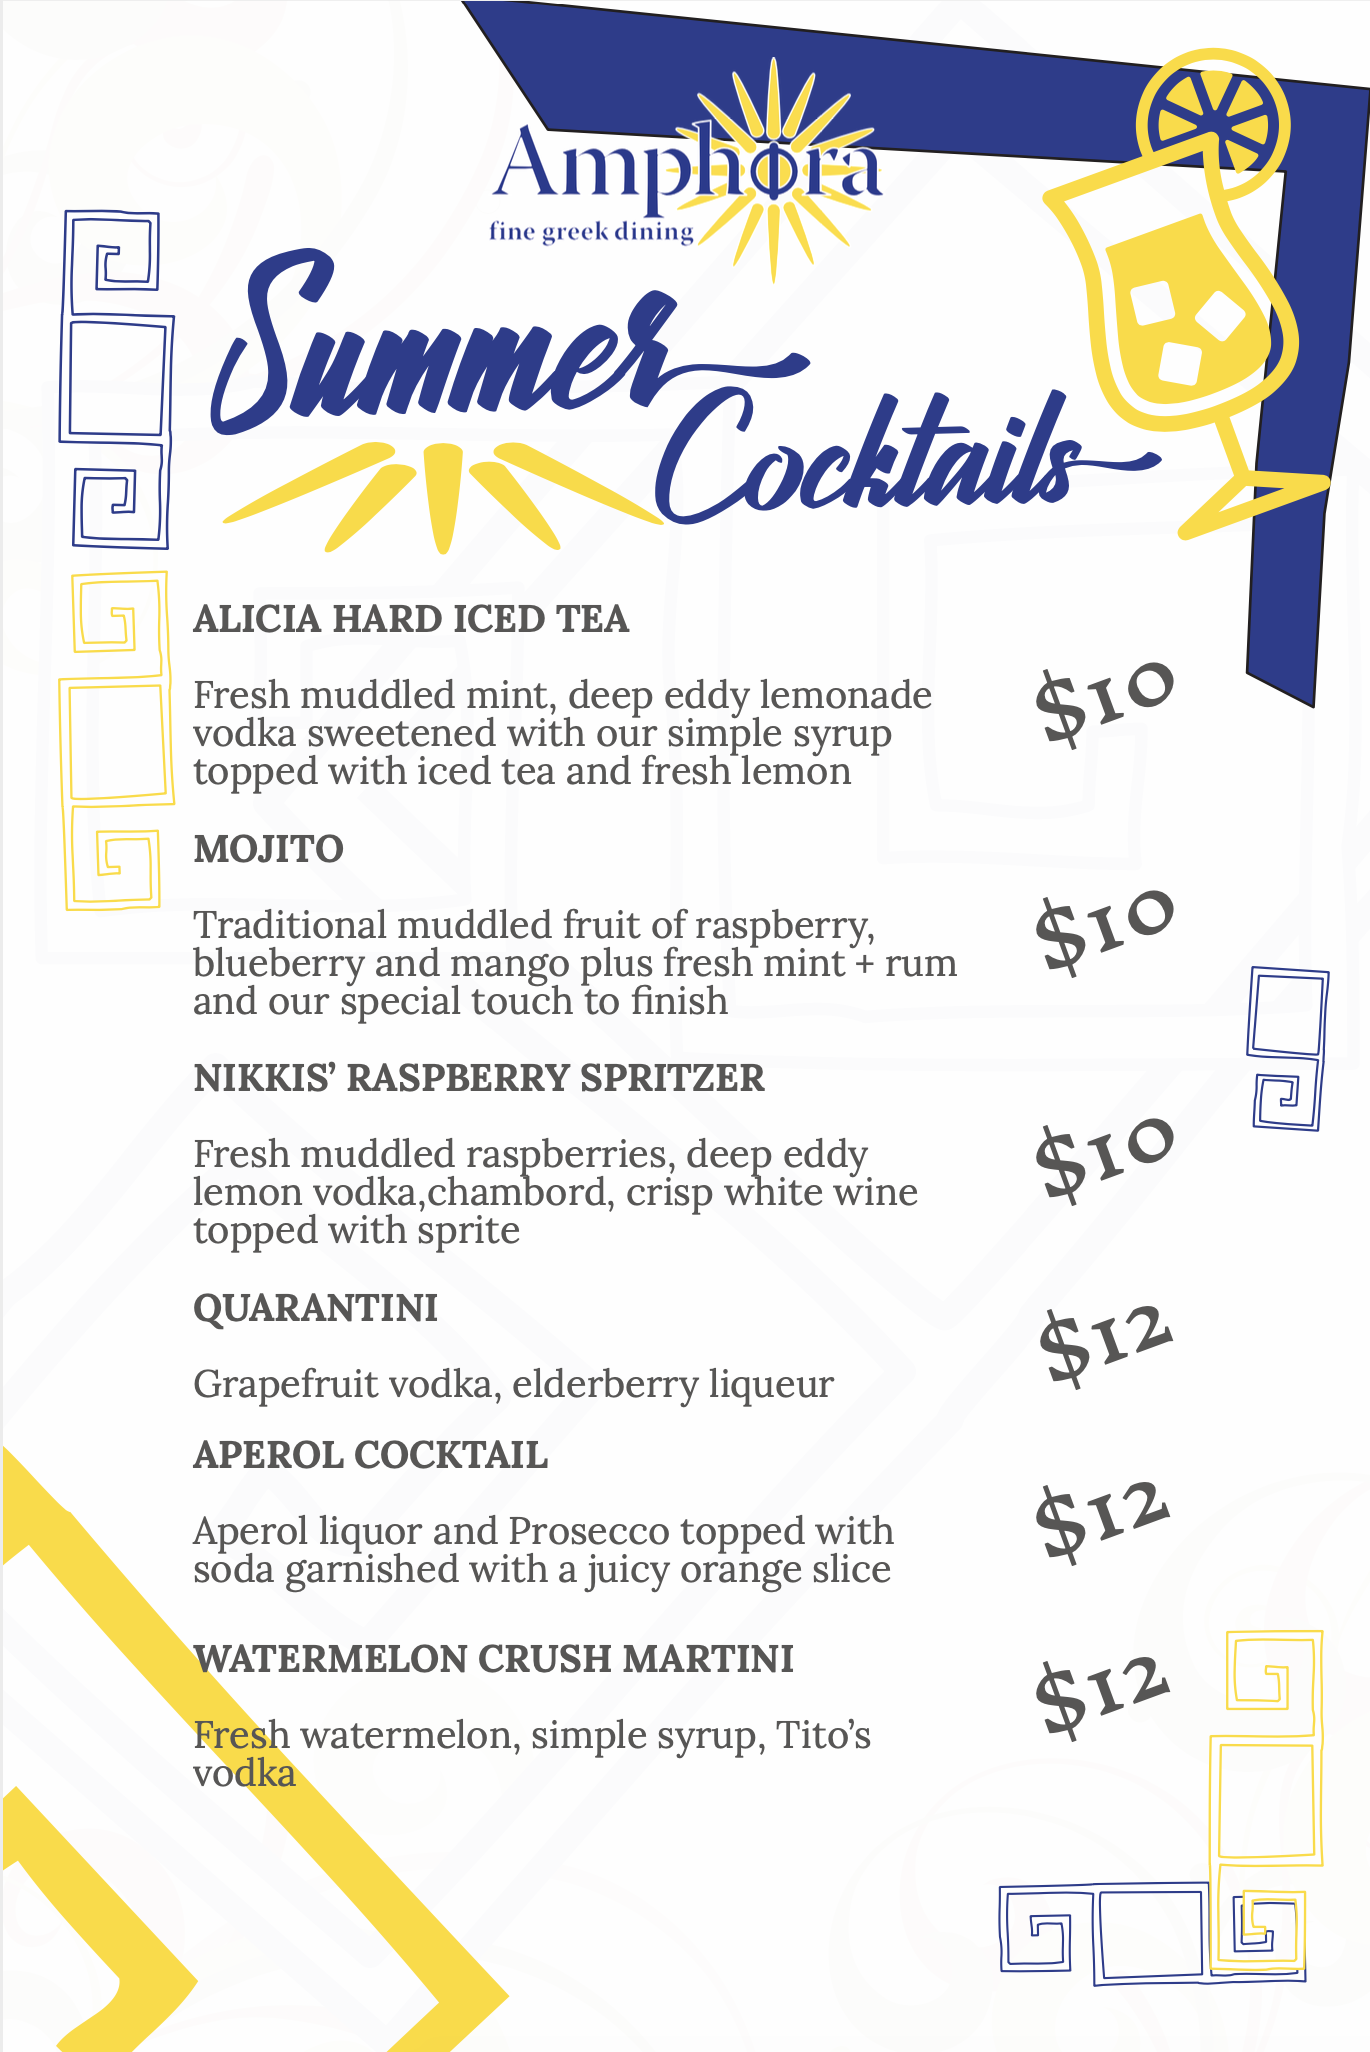 Amphora Summer Cocktail Menu